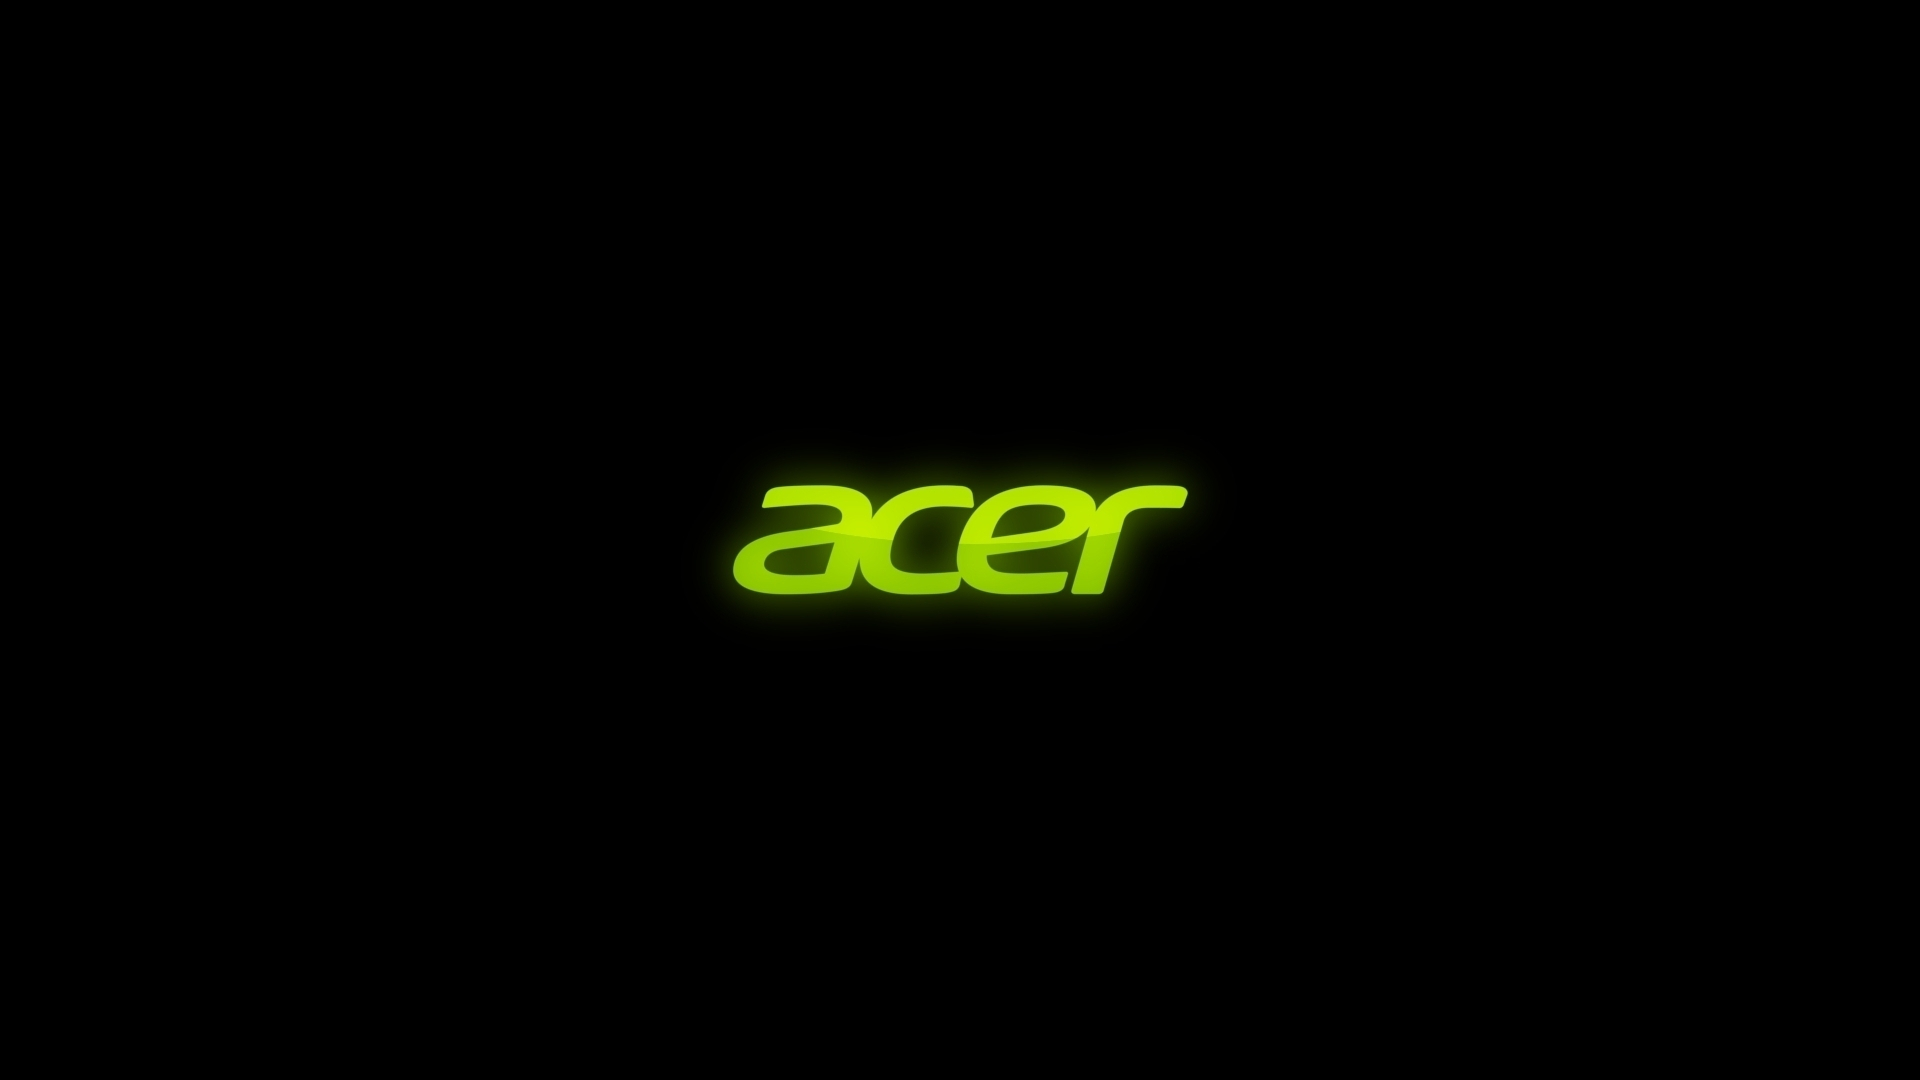 laptops price 2013 acer laptop and notebook price list in malaysia 1920x1080